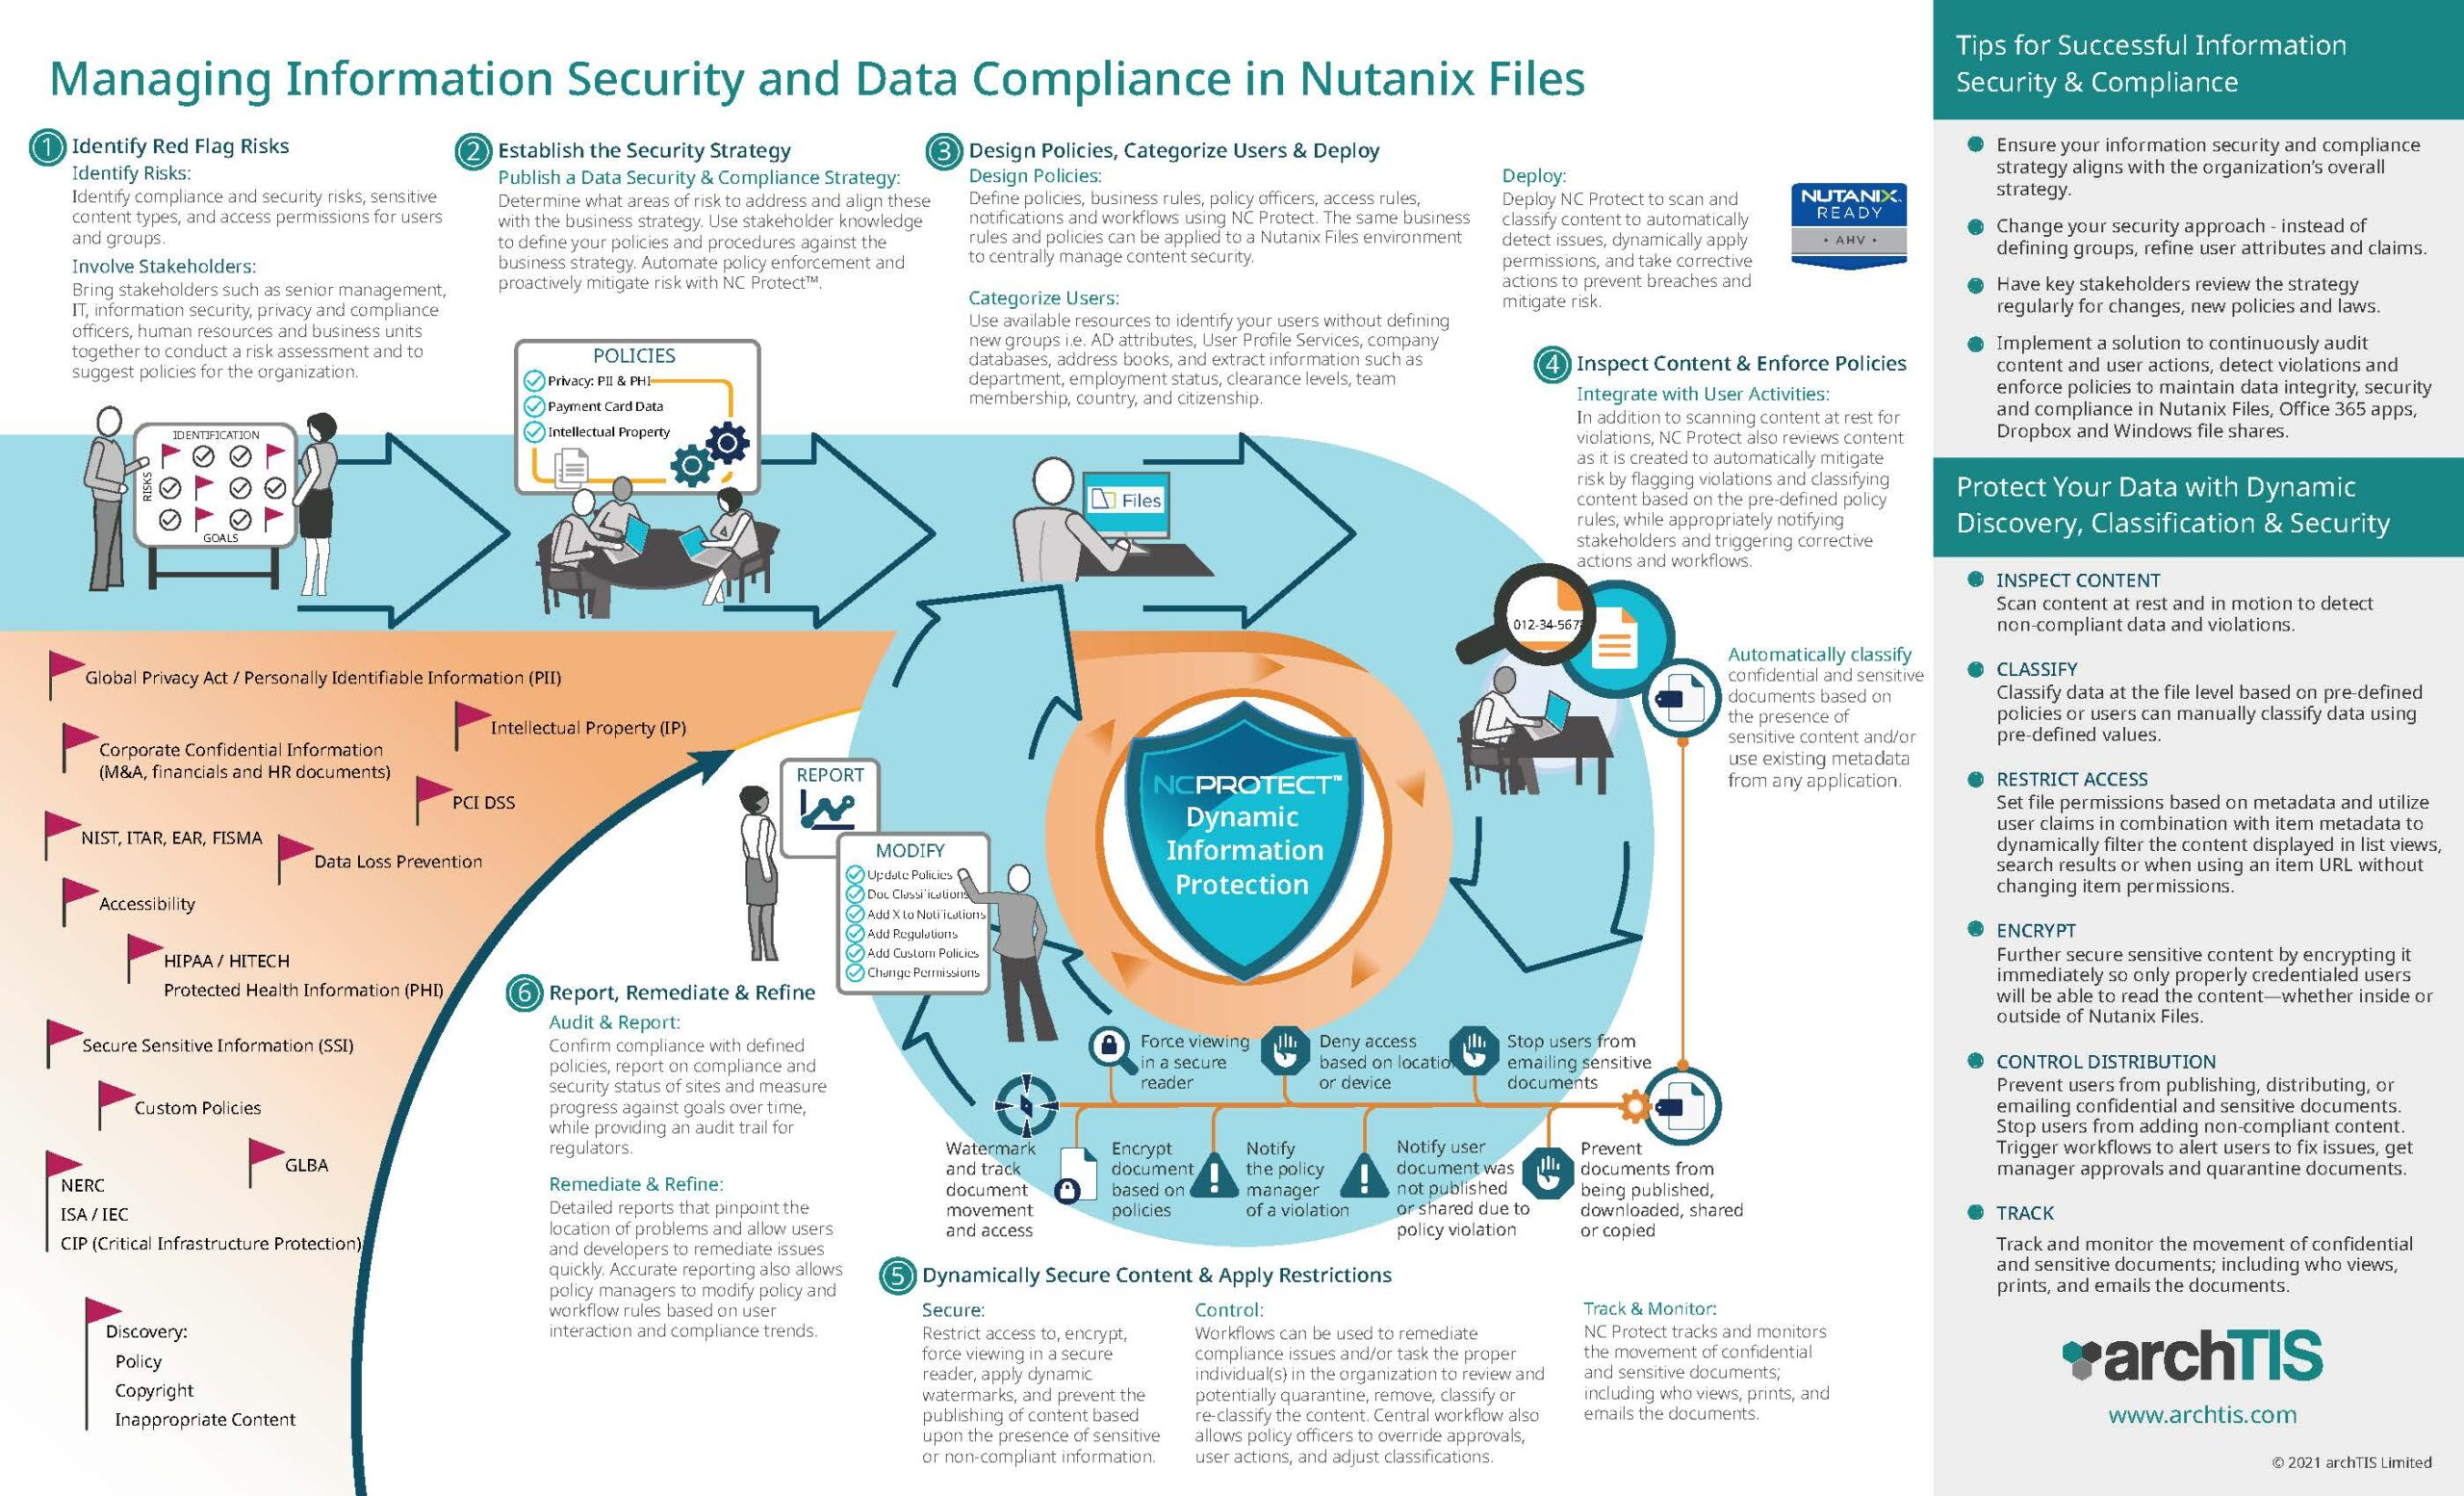 Infographic: Managing Information Security and Data Compliance in Nutanix Files